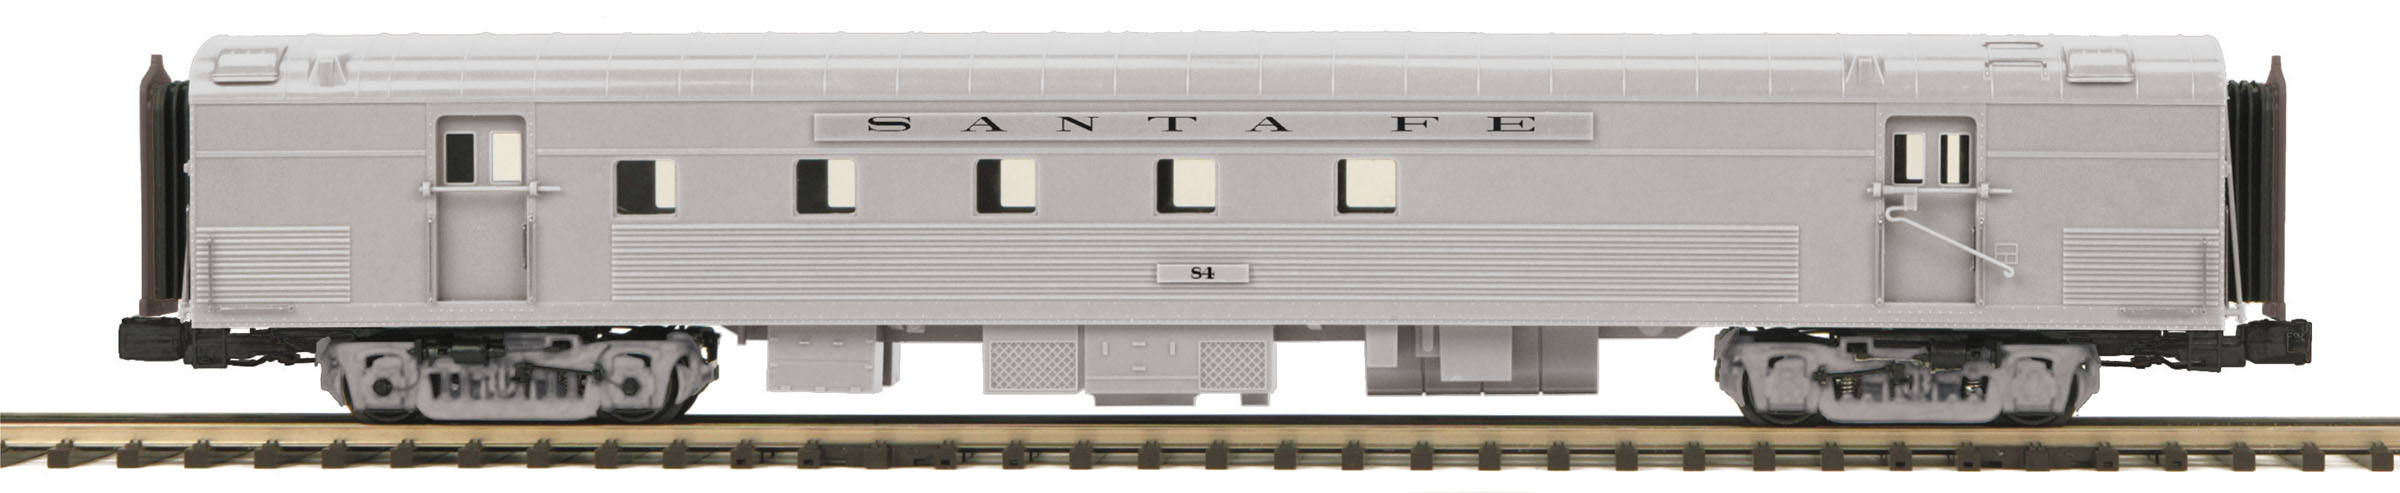 MTH2064042 MTH Electric Trains O 70' Strmlnd RPO SF 83 507-2064042